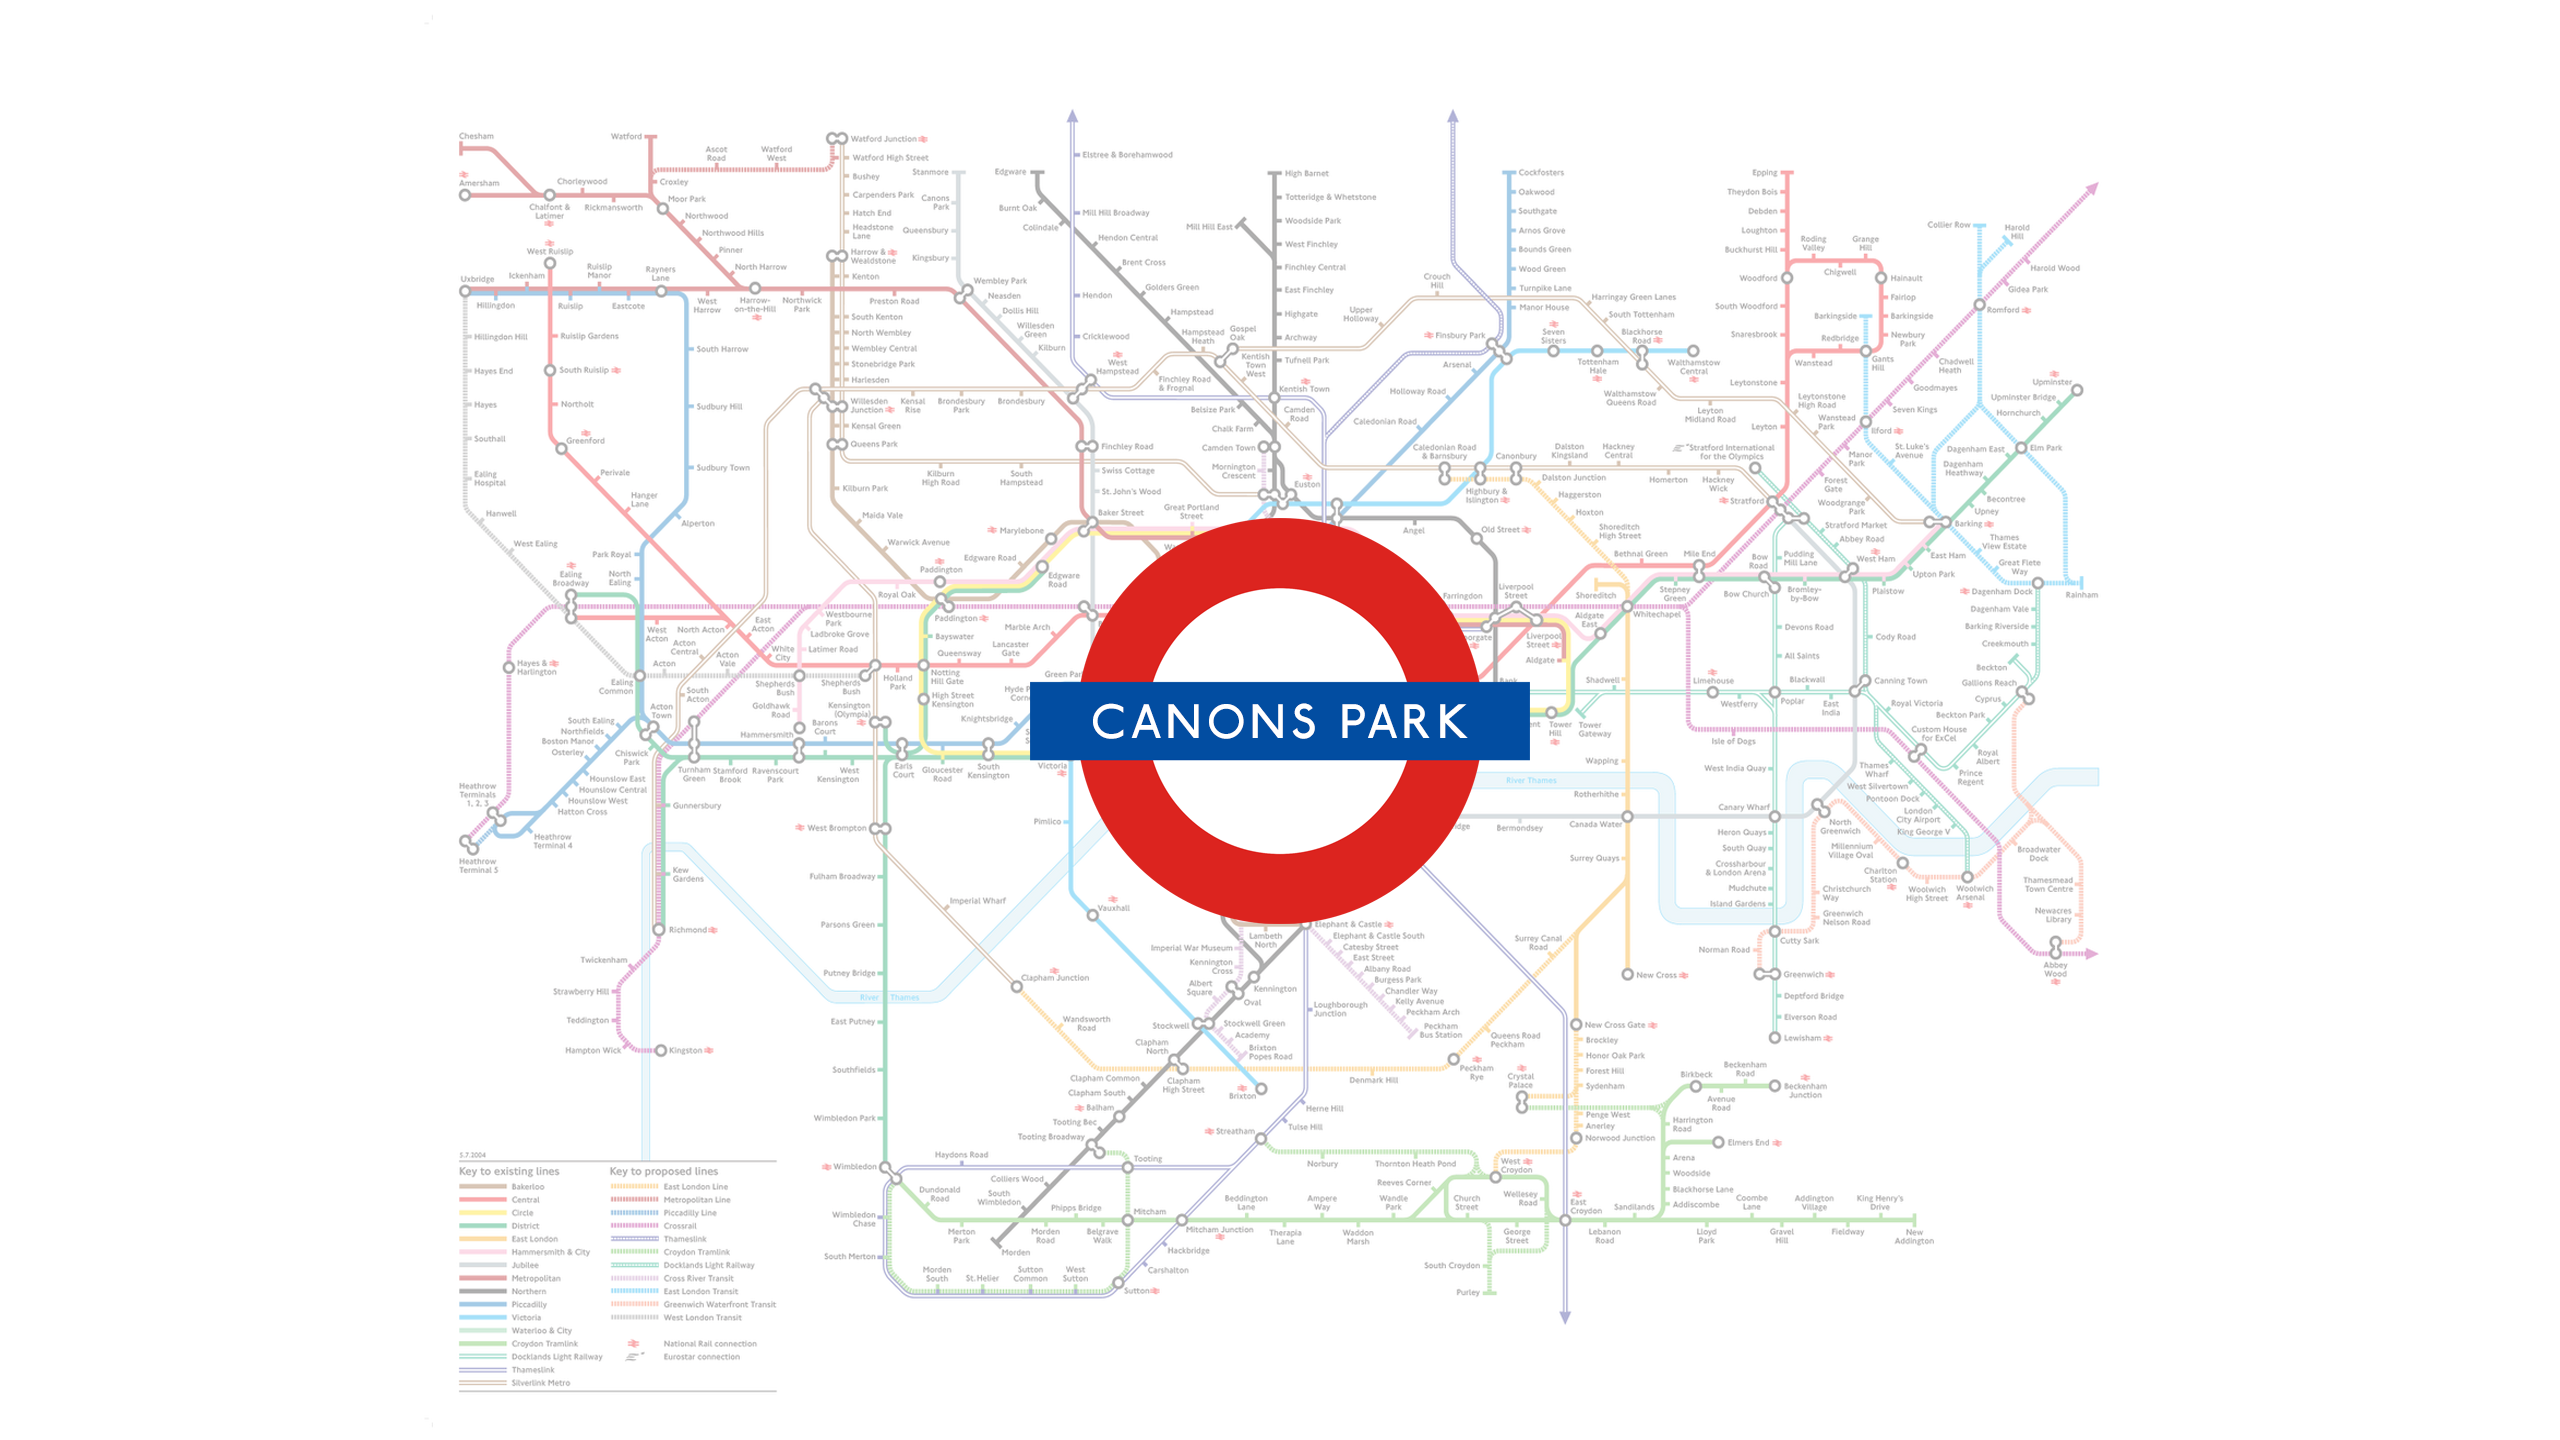 Canons Park (Map)